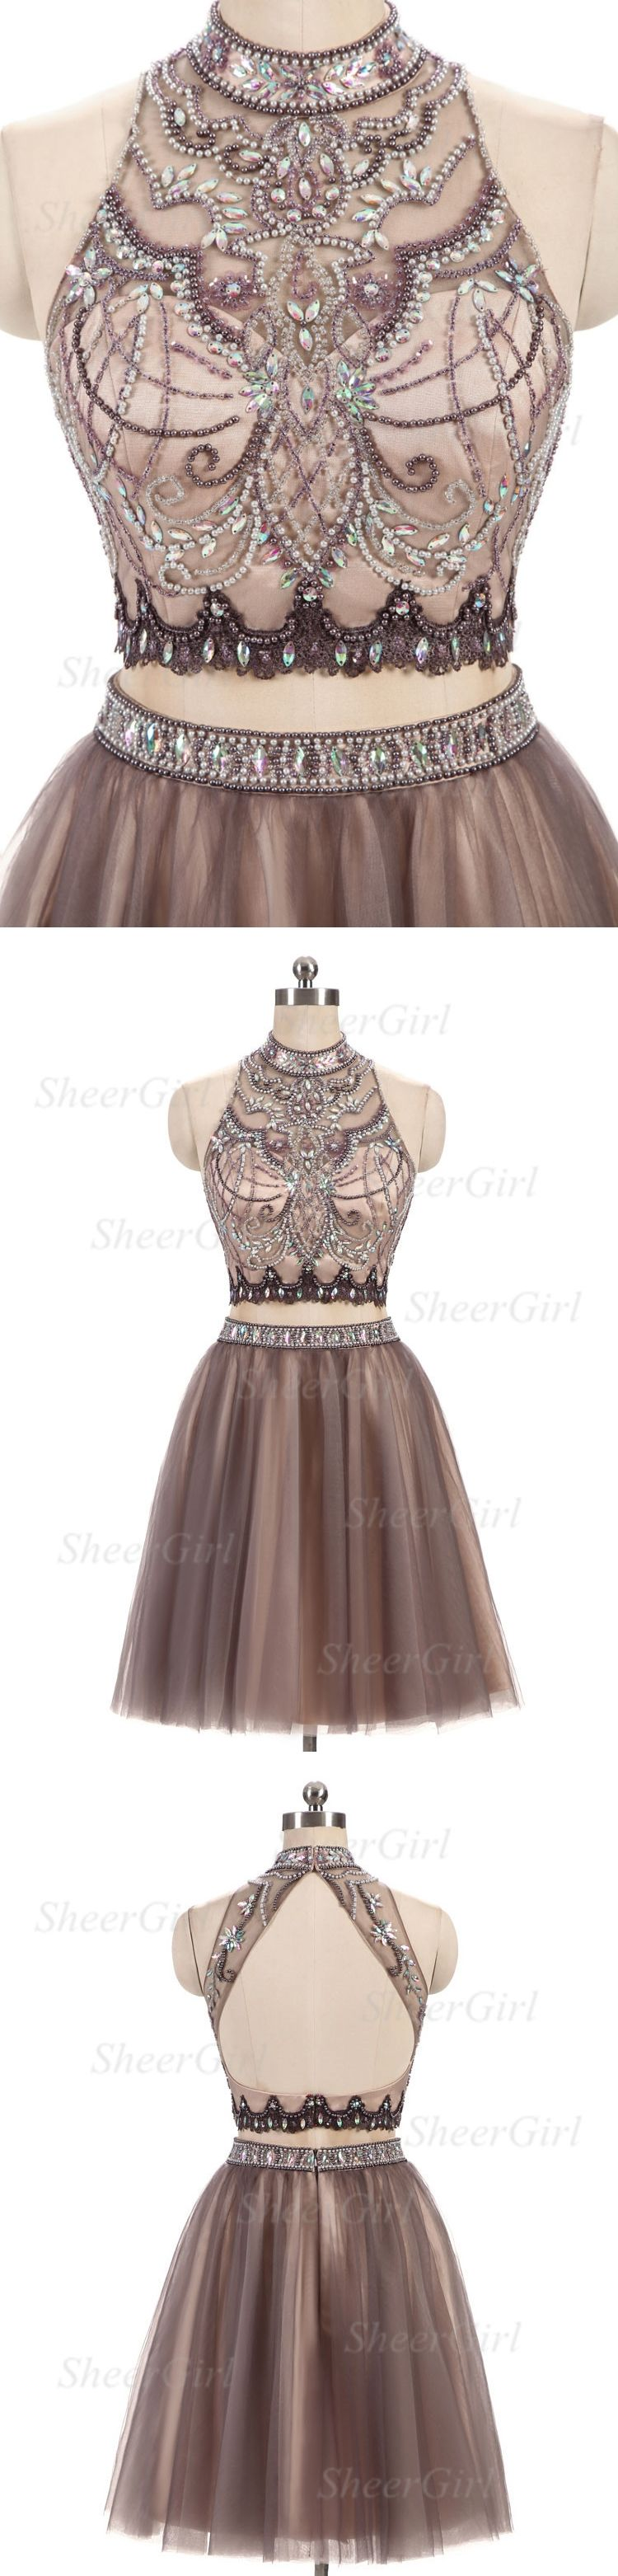 New arrival aline halter tulle with beaded two piece homecoming